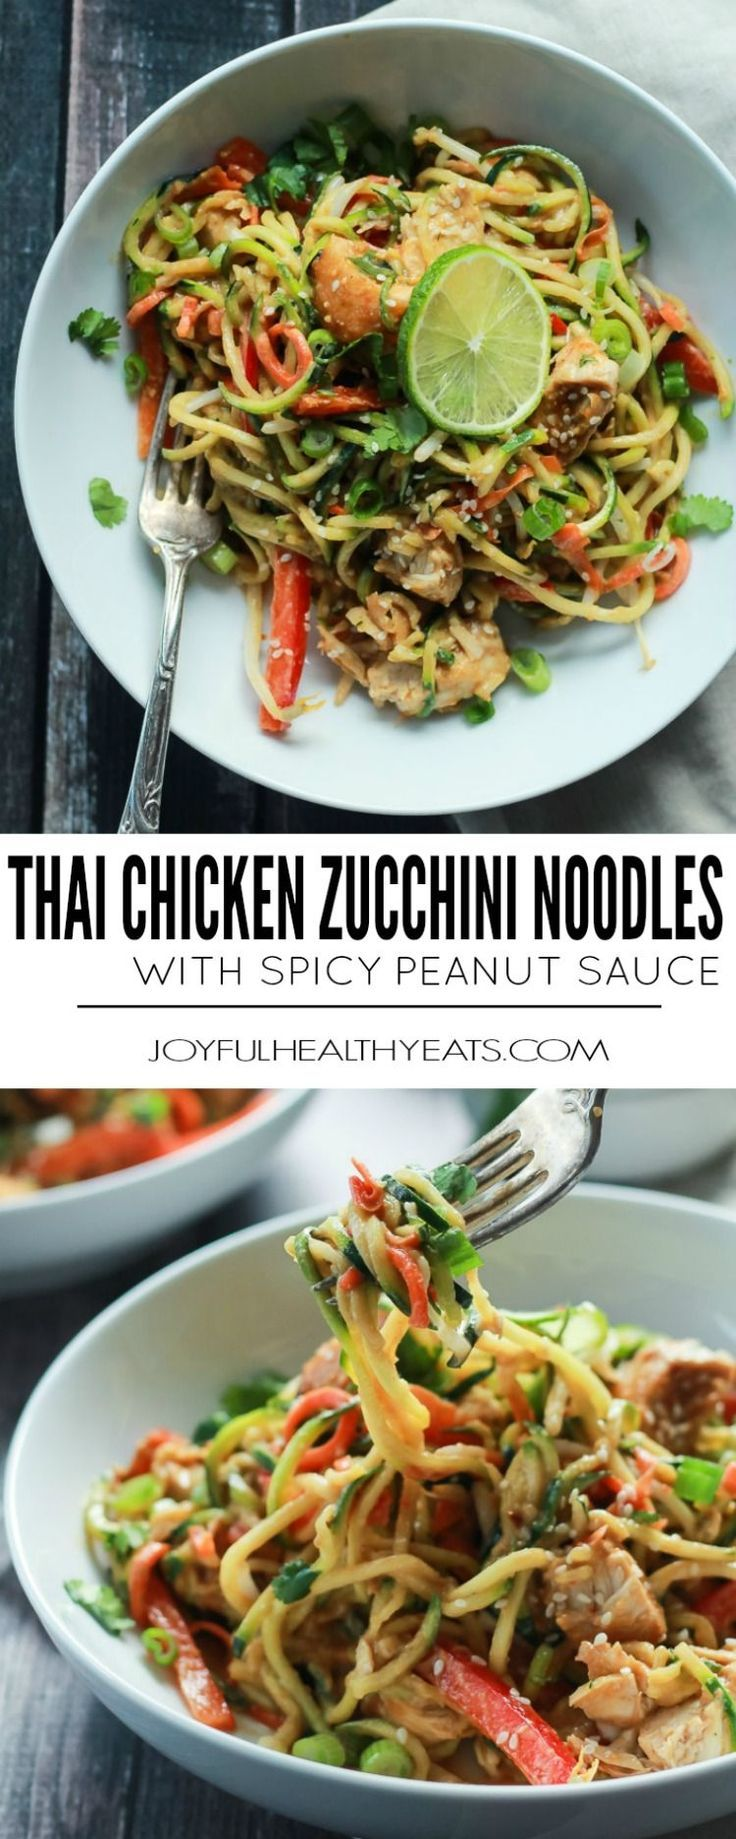 Zoodles are the star Zoodles are the star in this easy 15 minute Thai Chicken Zucchini Noodles recipe with Spicy Peanut Sauce only 363 calories and packed with a punch of flavor! | joyfulhealthyeats... #paleo #glutenfree https://www.pinterest.com/pin/285556432606640947/